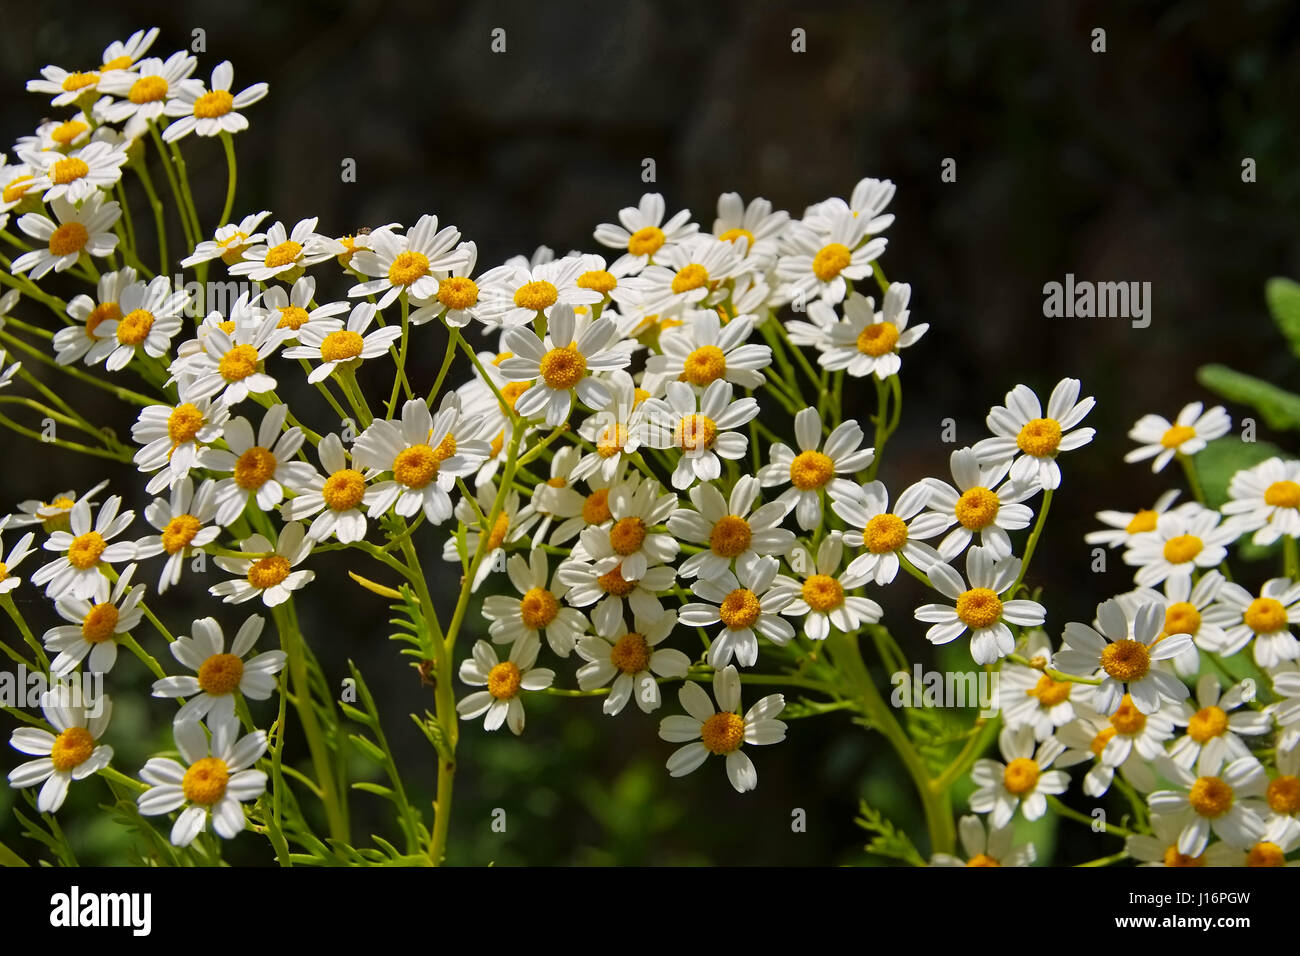 Tanacetum ferulaceum, a species of flowering plants in the aster family - Stock Image